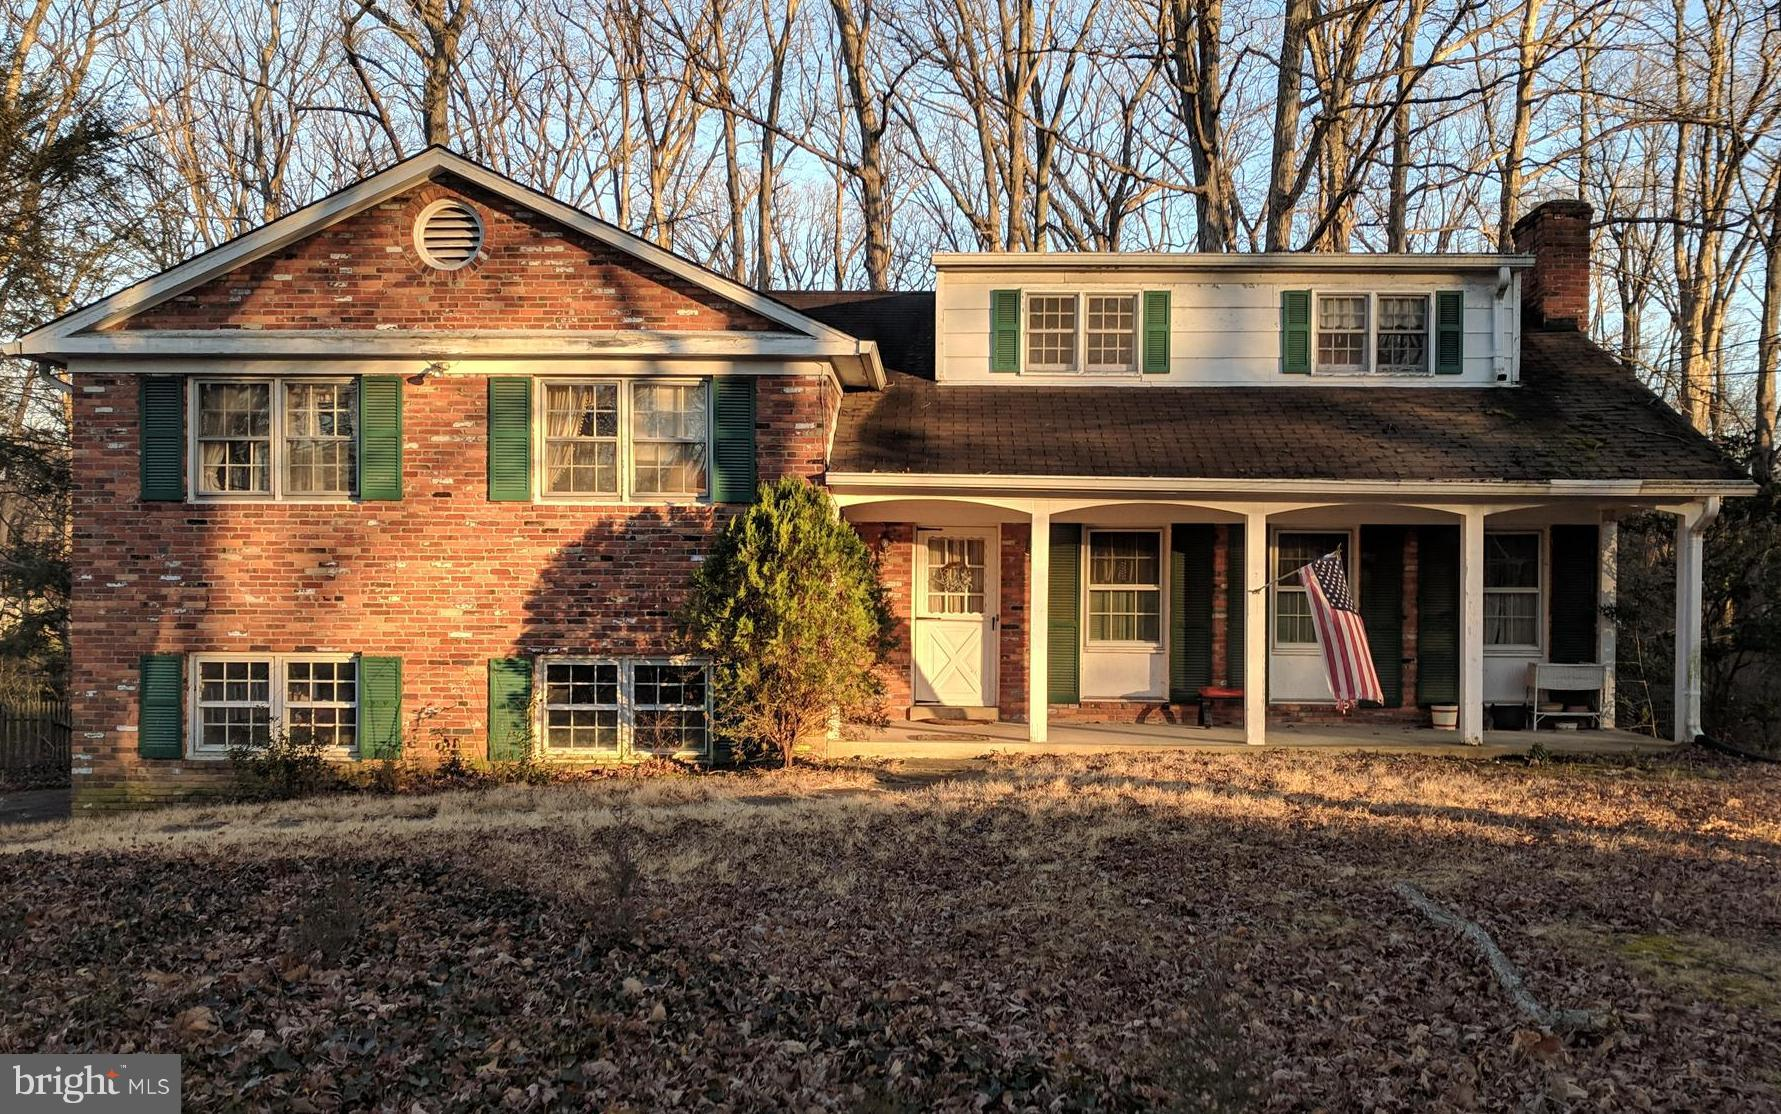 Excellent opportunity to invest in this home!  Situated on almost 3/4 acre in the heart of Mount Vernon on one of George Washington's original farms. There is so much potential to make this home shine!  Newer HVAC and Gas Furnace (installed around 2015/ 2016).  Home is being sold AS-IS.